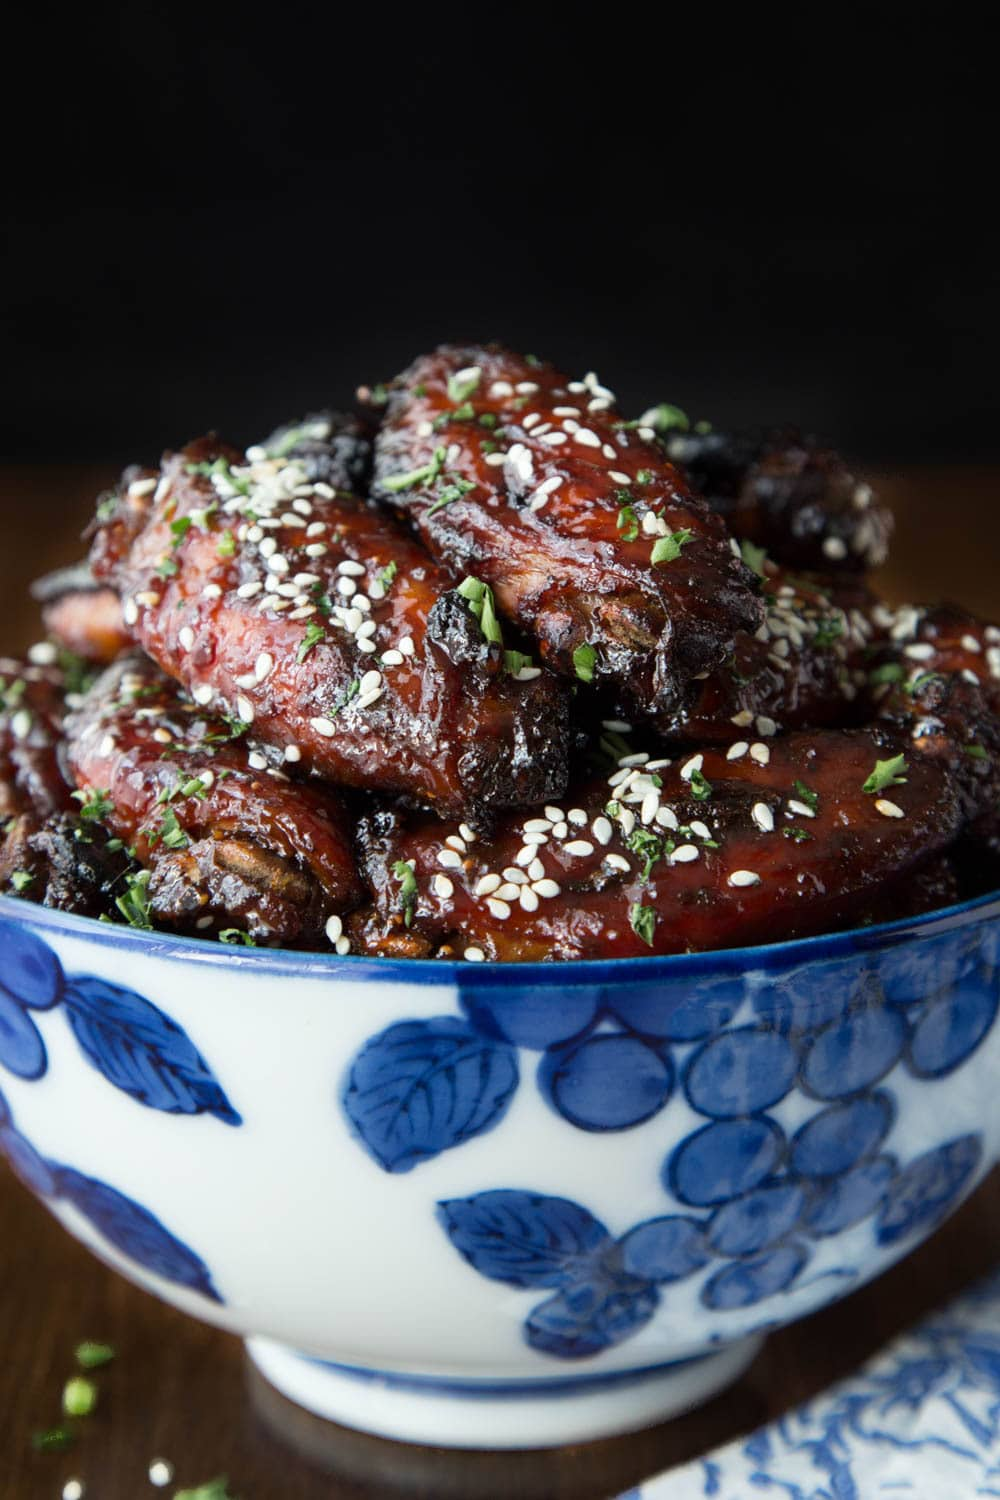 Photo of a blue and white patterned bowl filled with Strawberry Balsamic Glazed Wings.